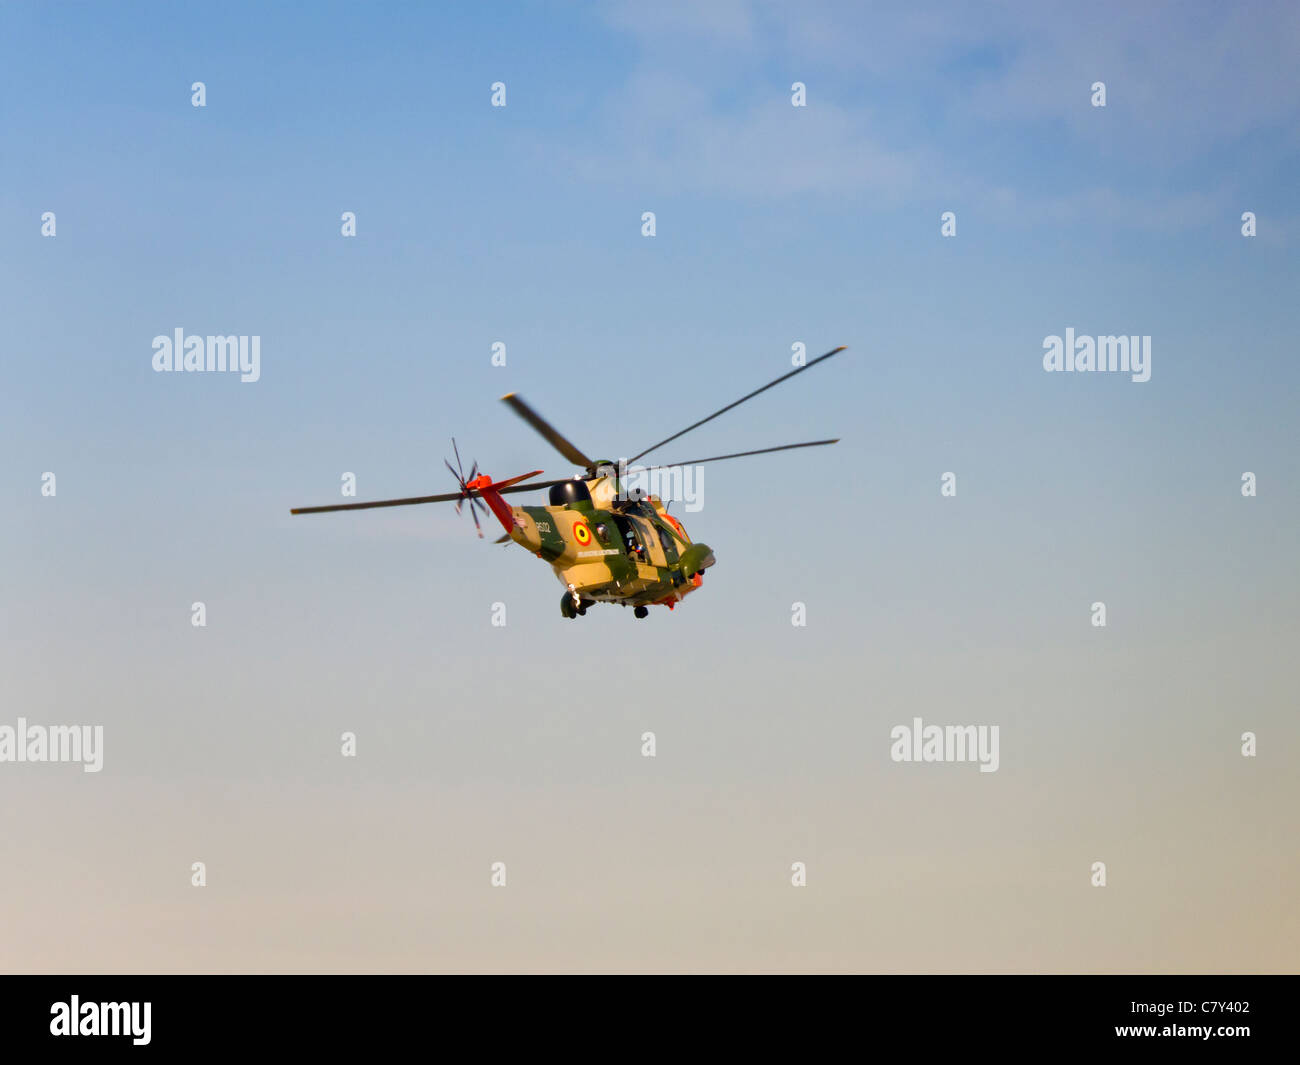 Belgian Air Force search and rescue helicopter in flight, Westland Sea King MK 48 - Stock Image